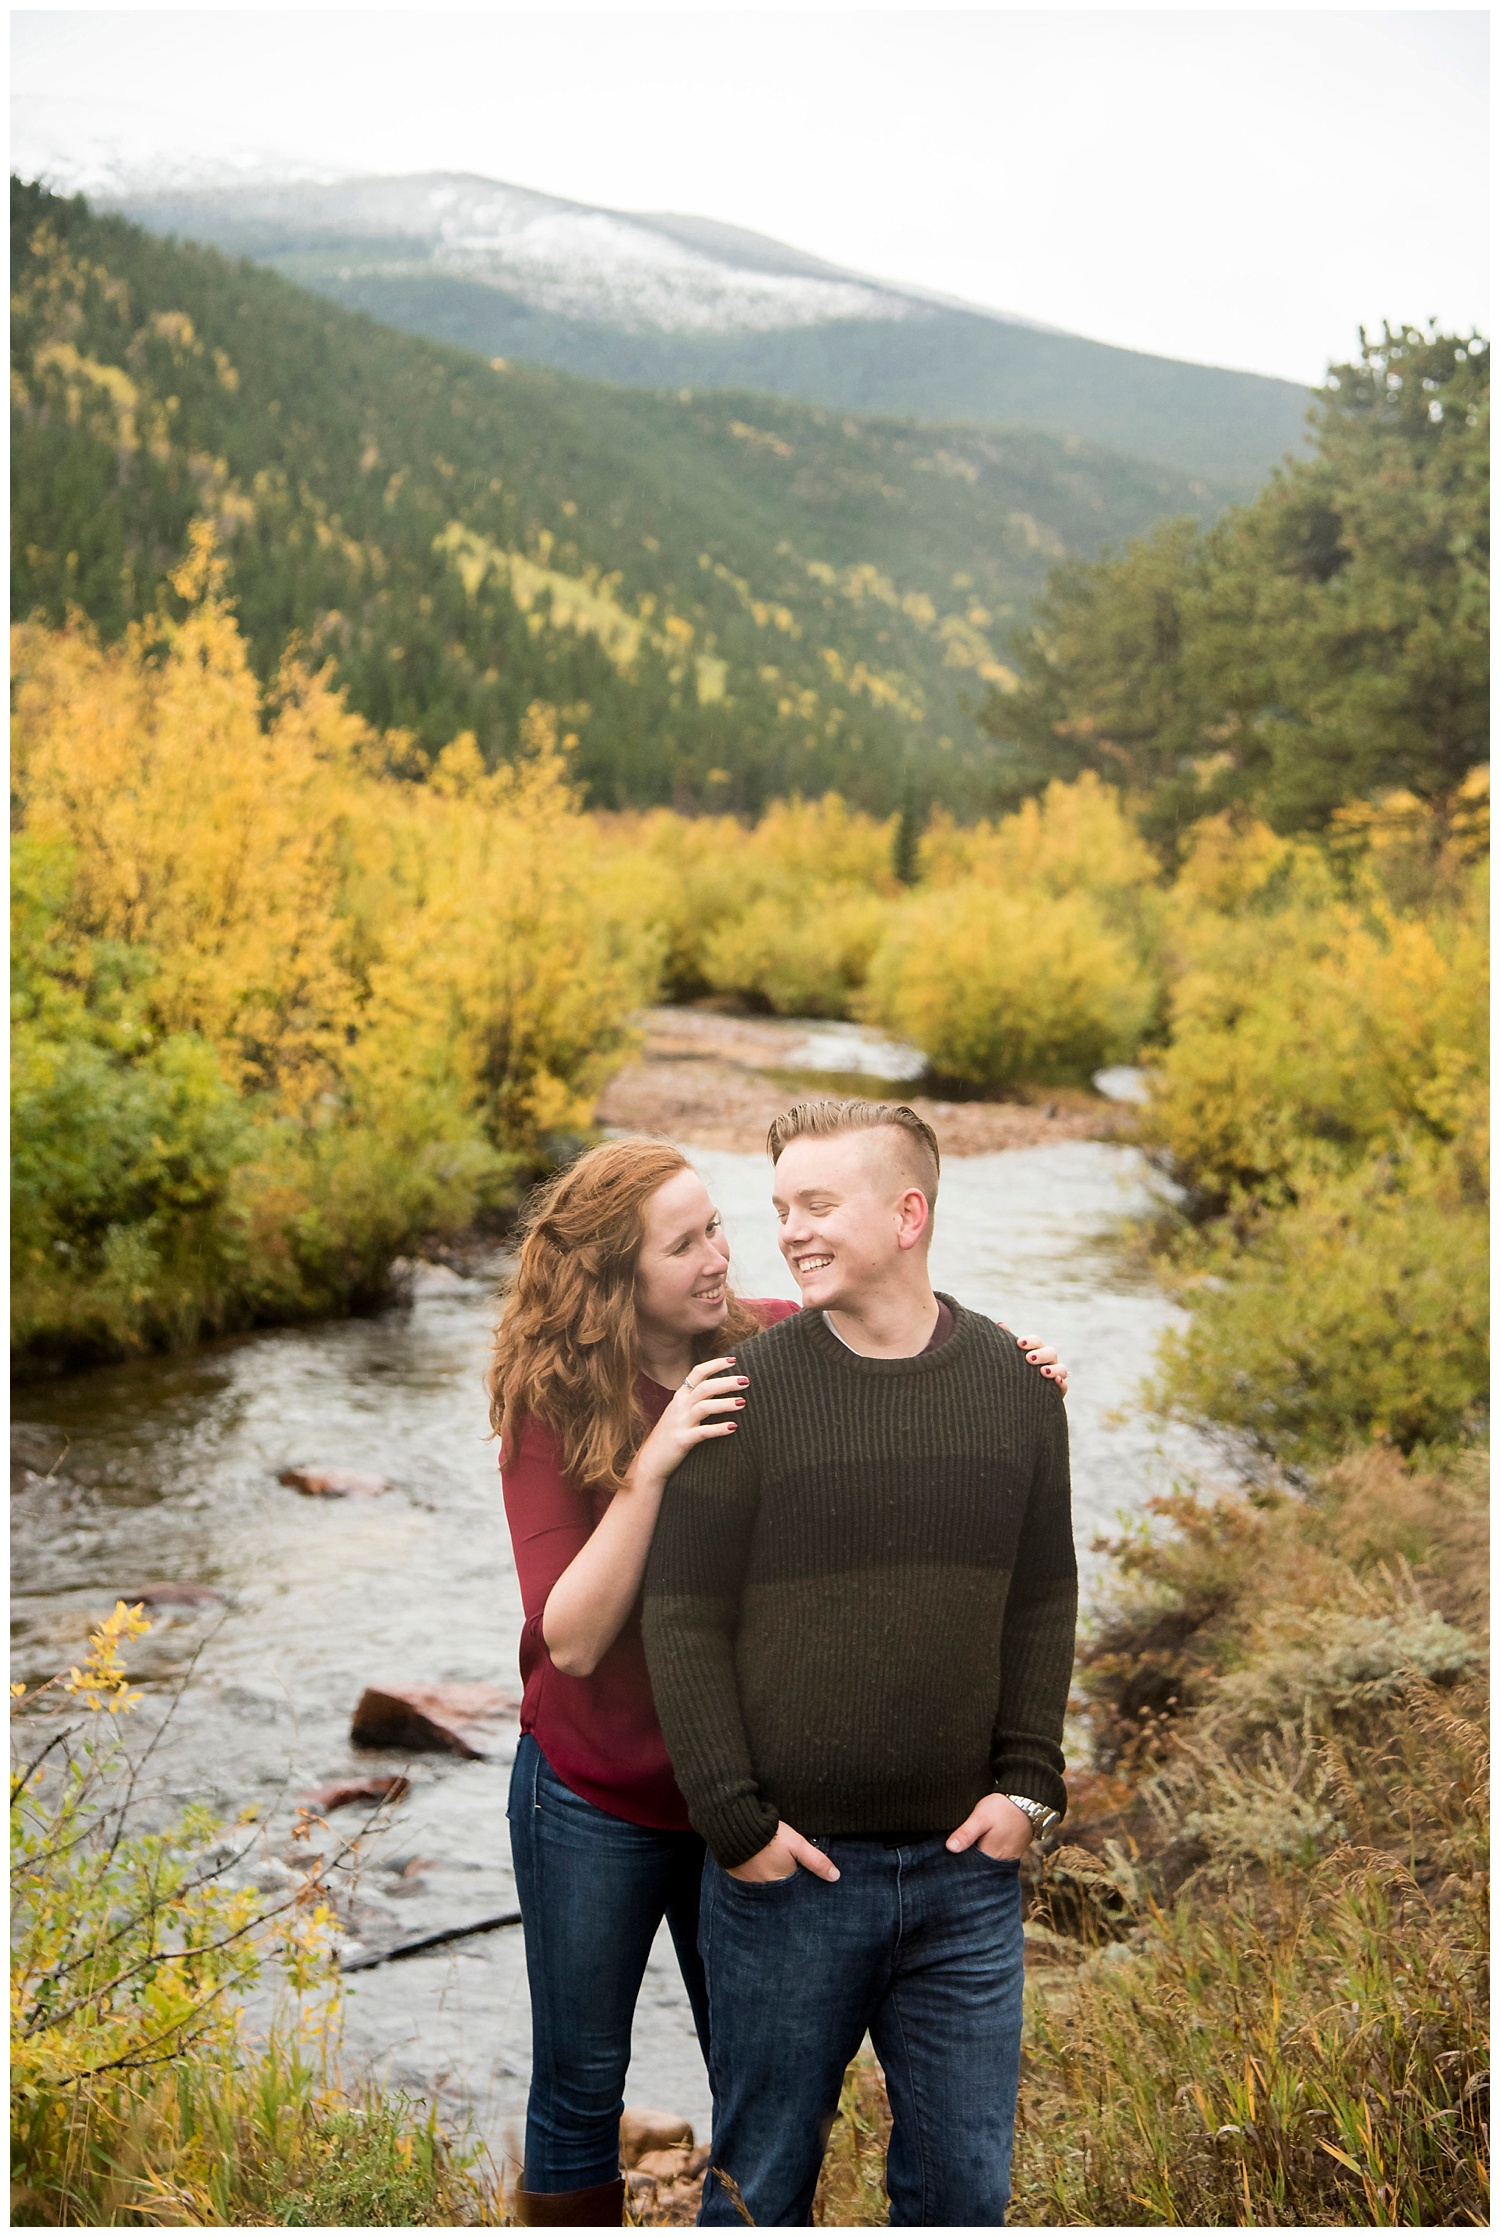 Kissing in Front of Lake | Don & Aliyah's Mountain Engagement Photography | Farm Wedding Photographer | Apollo Fields Wedding Wedding Photojournalism